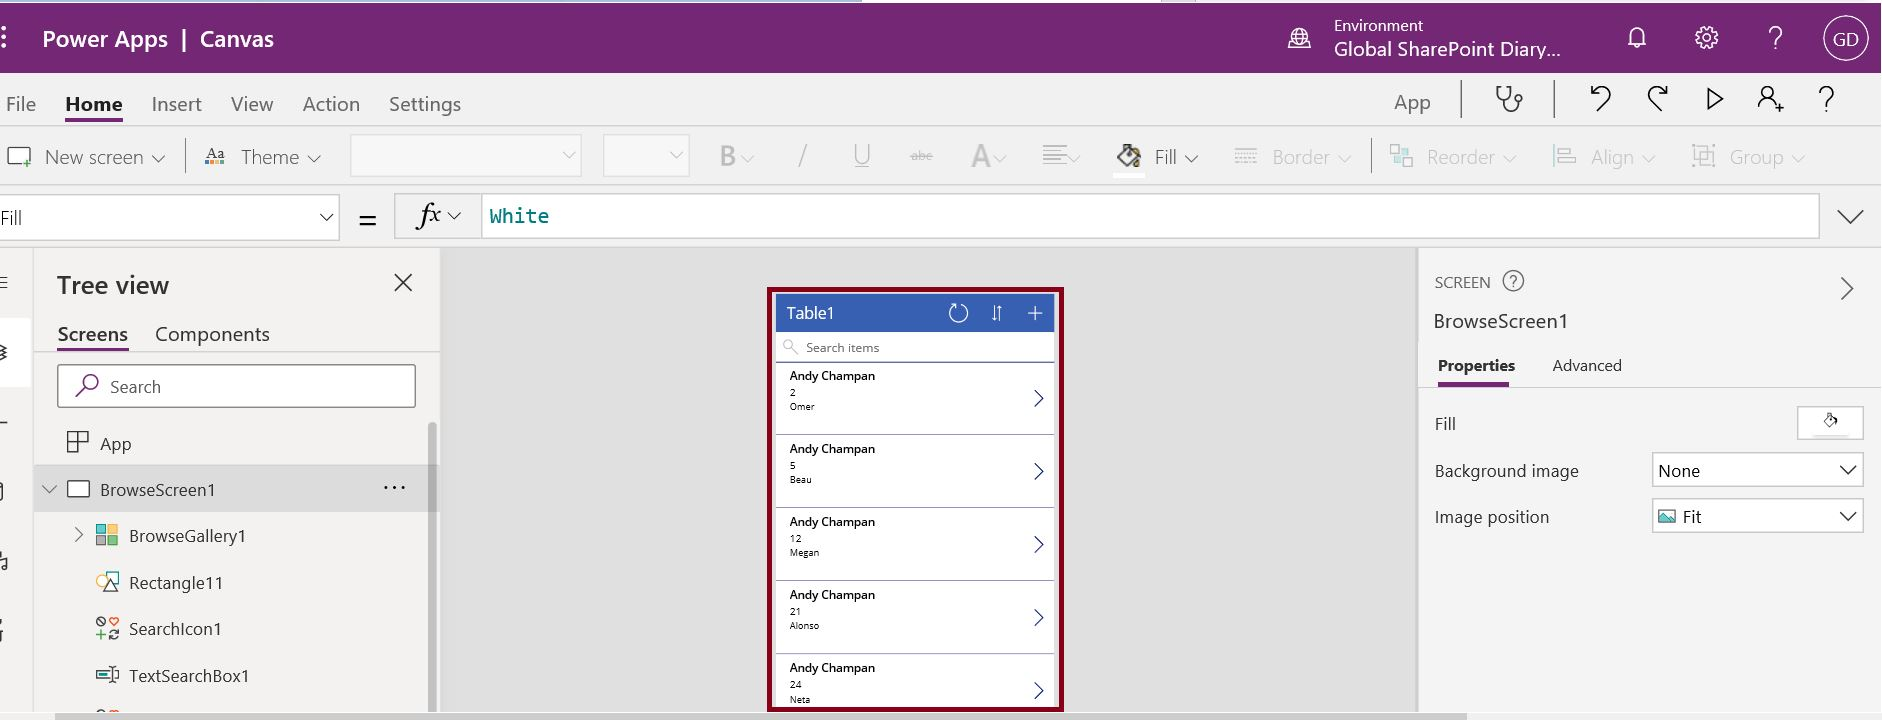 PowerApp model driven app is created from excel OneDrive